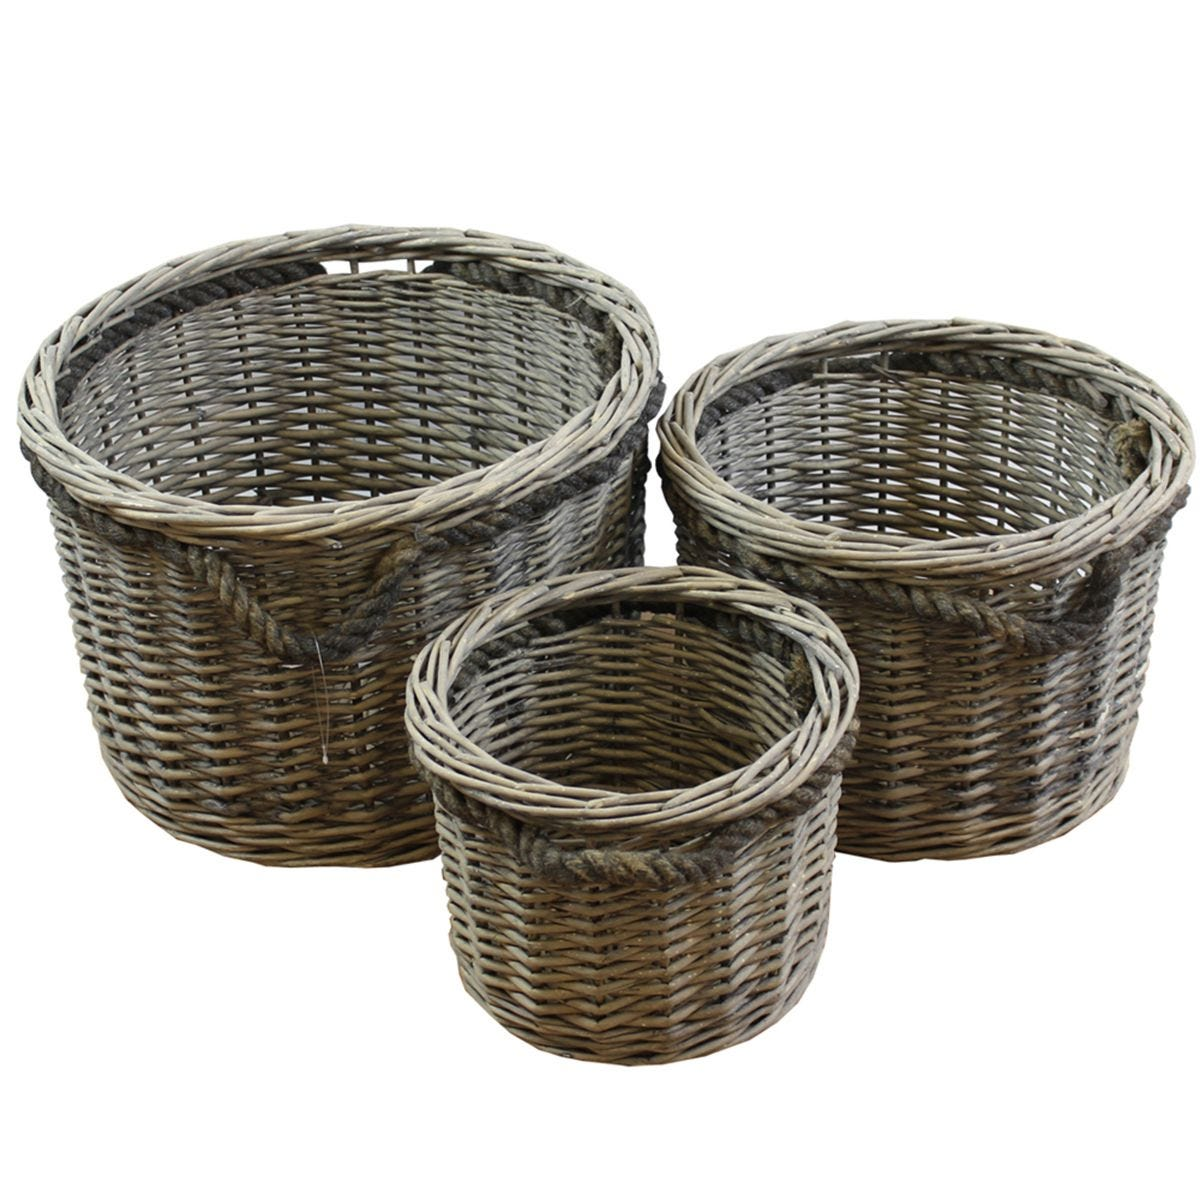 JVL Chunky Home Round Storage Baskets with Loop Handles Wood Natural Set of 3